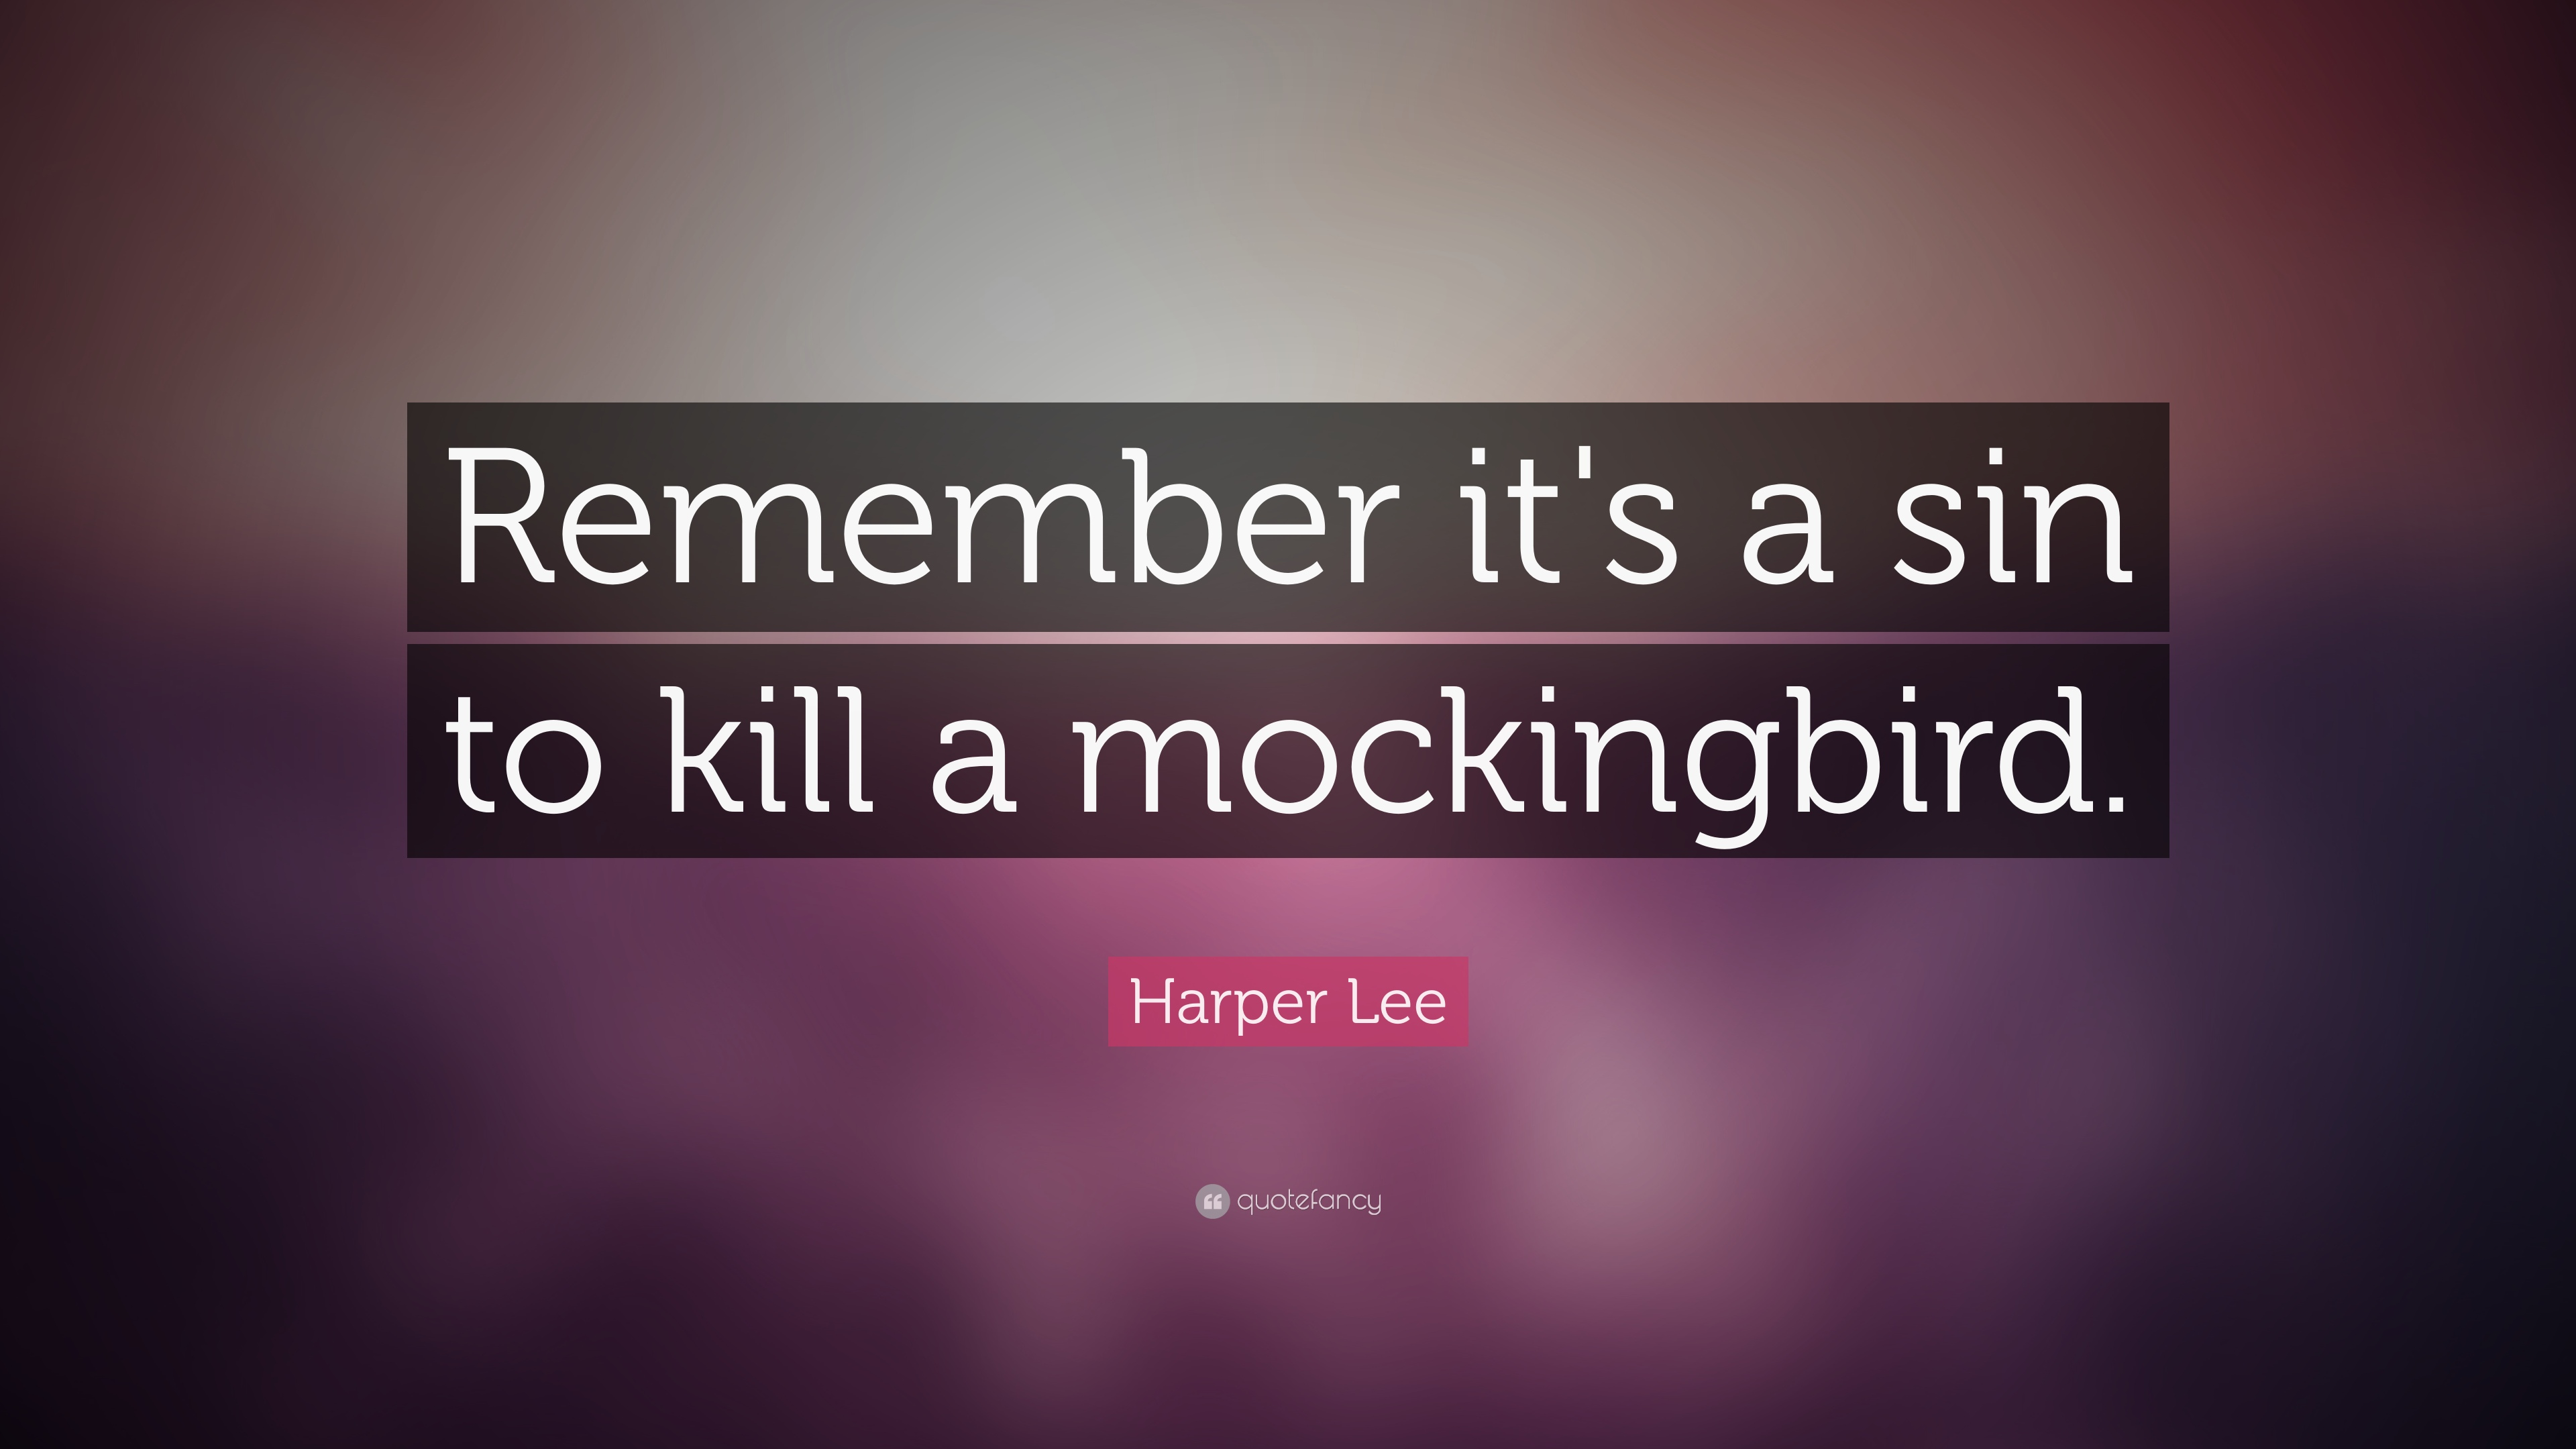 harper lee quote remember its a sin to kill a mockingbird